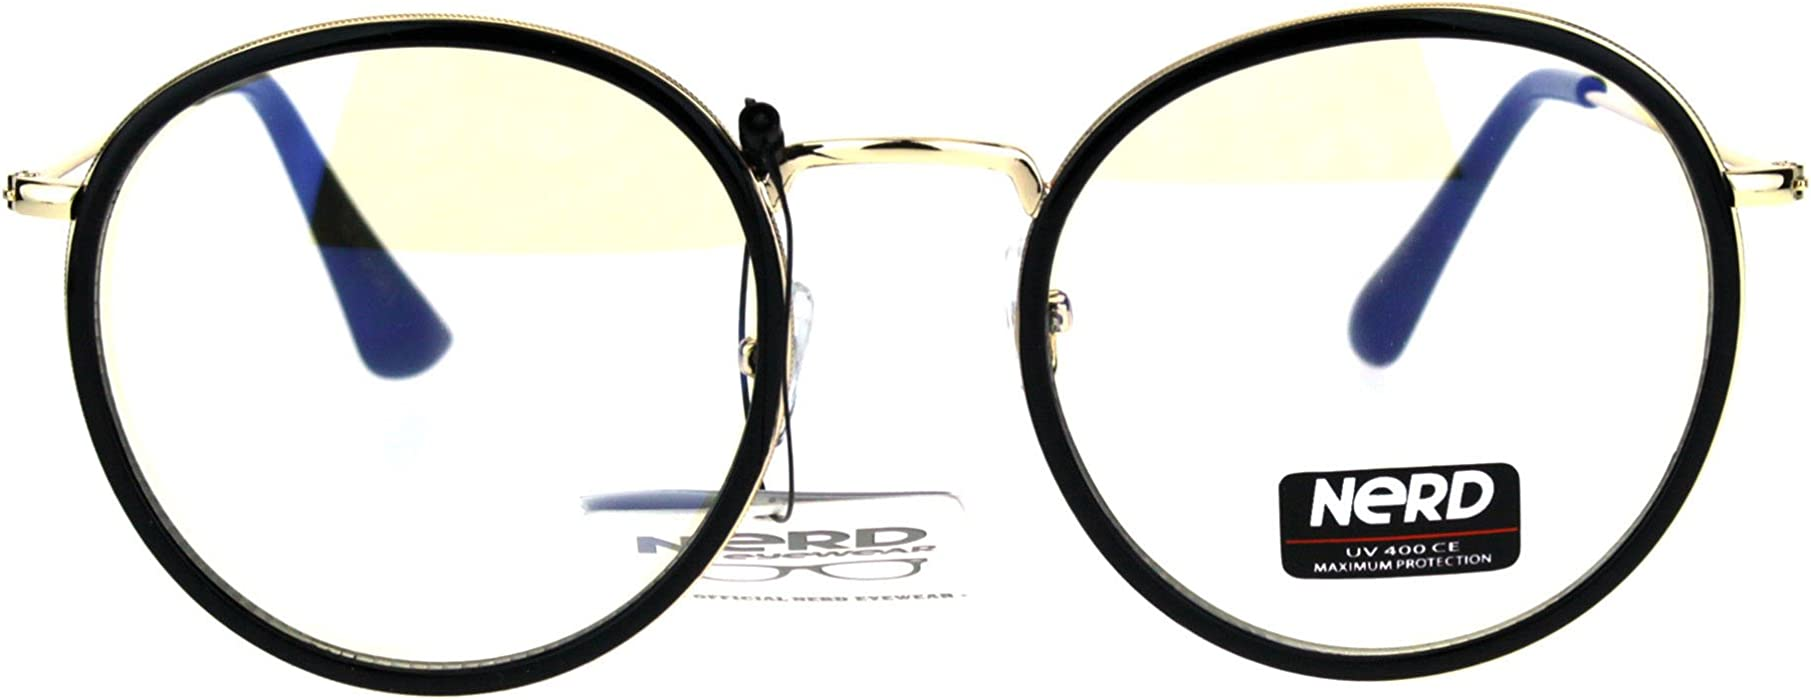 92e535db40 Amazon.com  Fashion Clear Lens Glasses Round Double Frame Eyeglasses ...